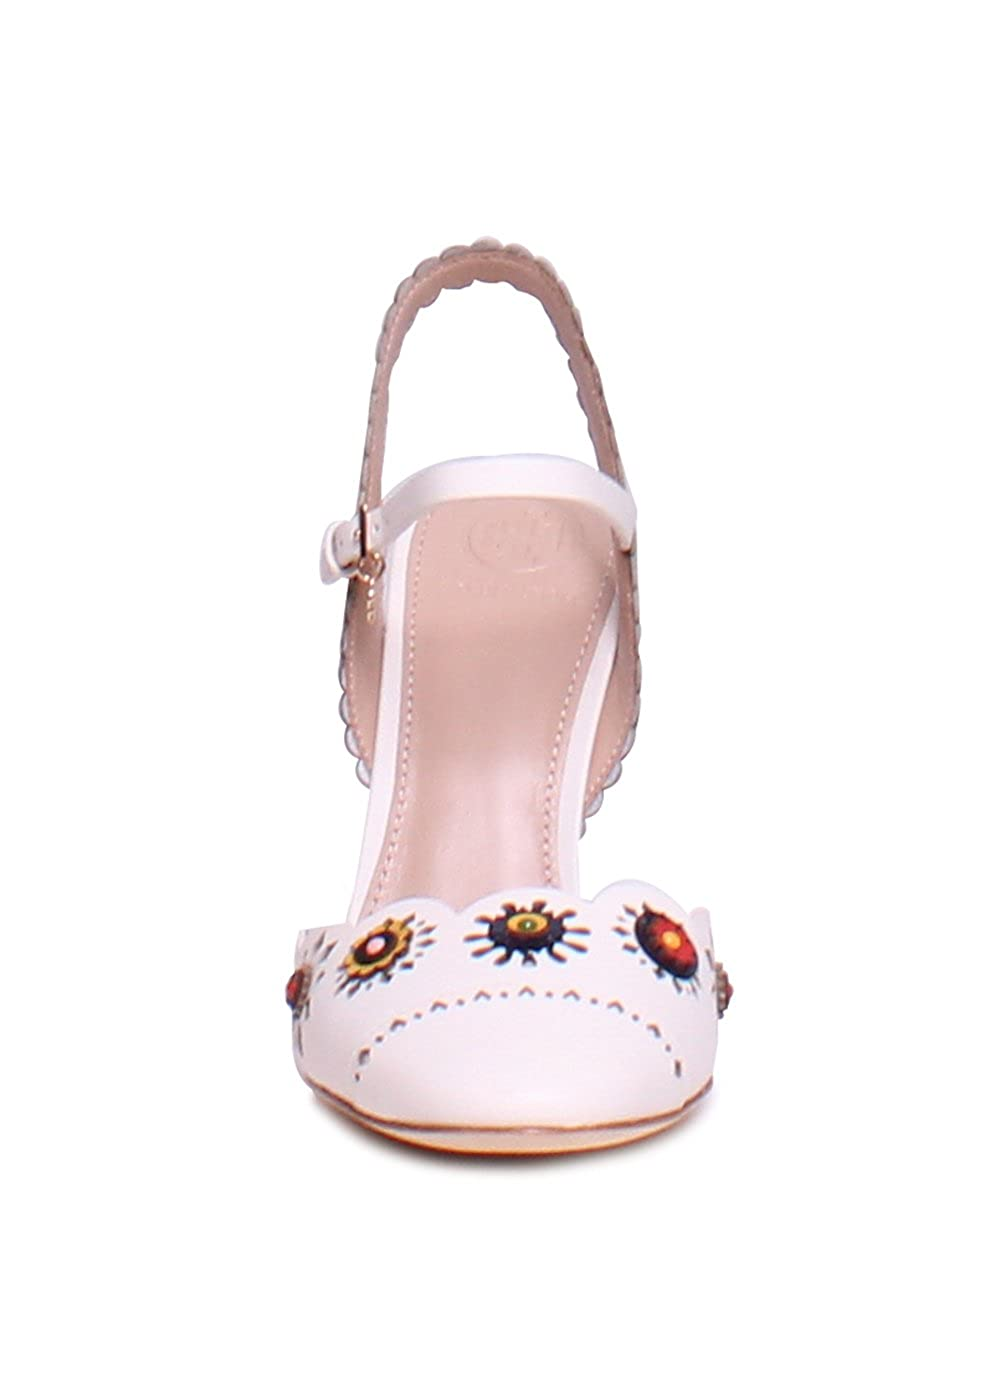 495e5d9e127 Tory Burch Marguerite Perforated Leather Sandals